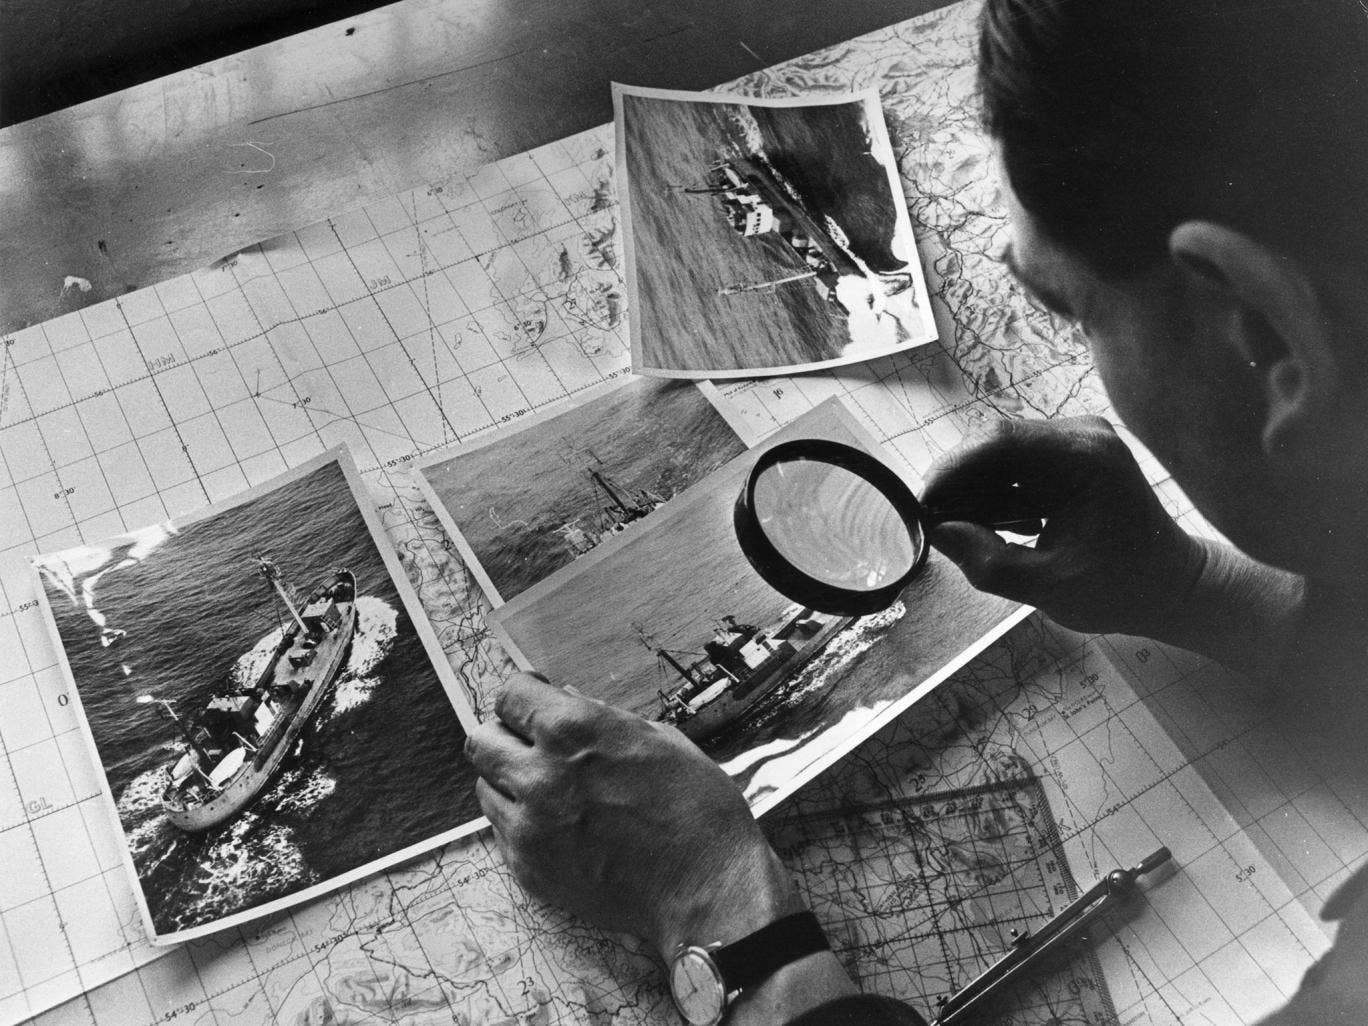 RAF photos of a Soviet spy trawler in 1968: there are now concerns that national hostilities have moved into the digital age